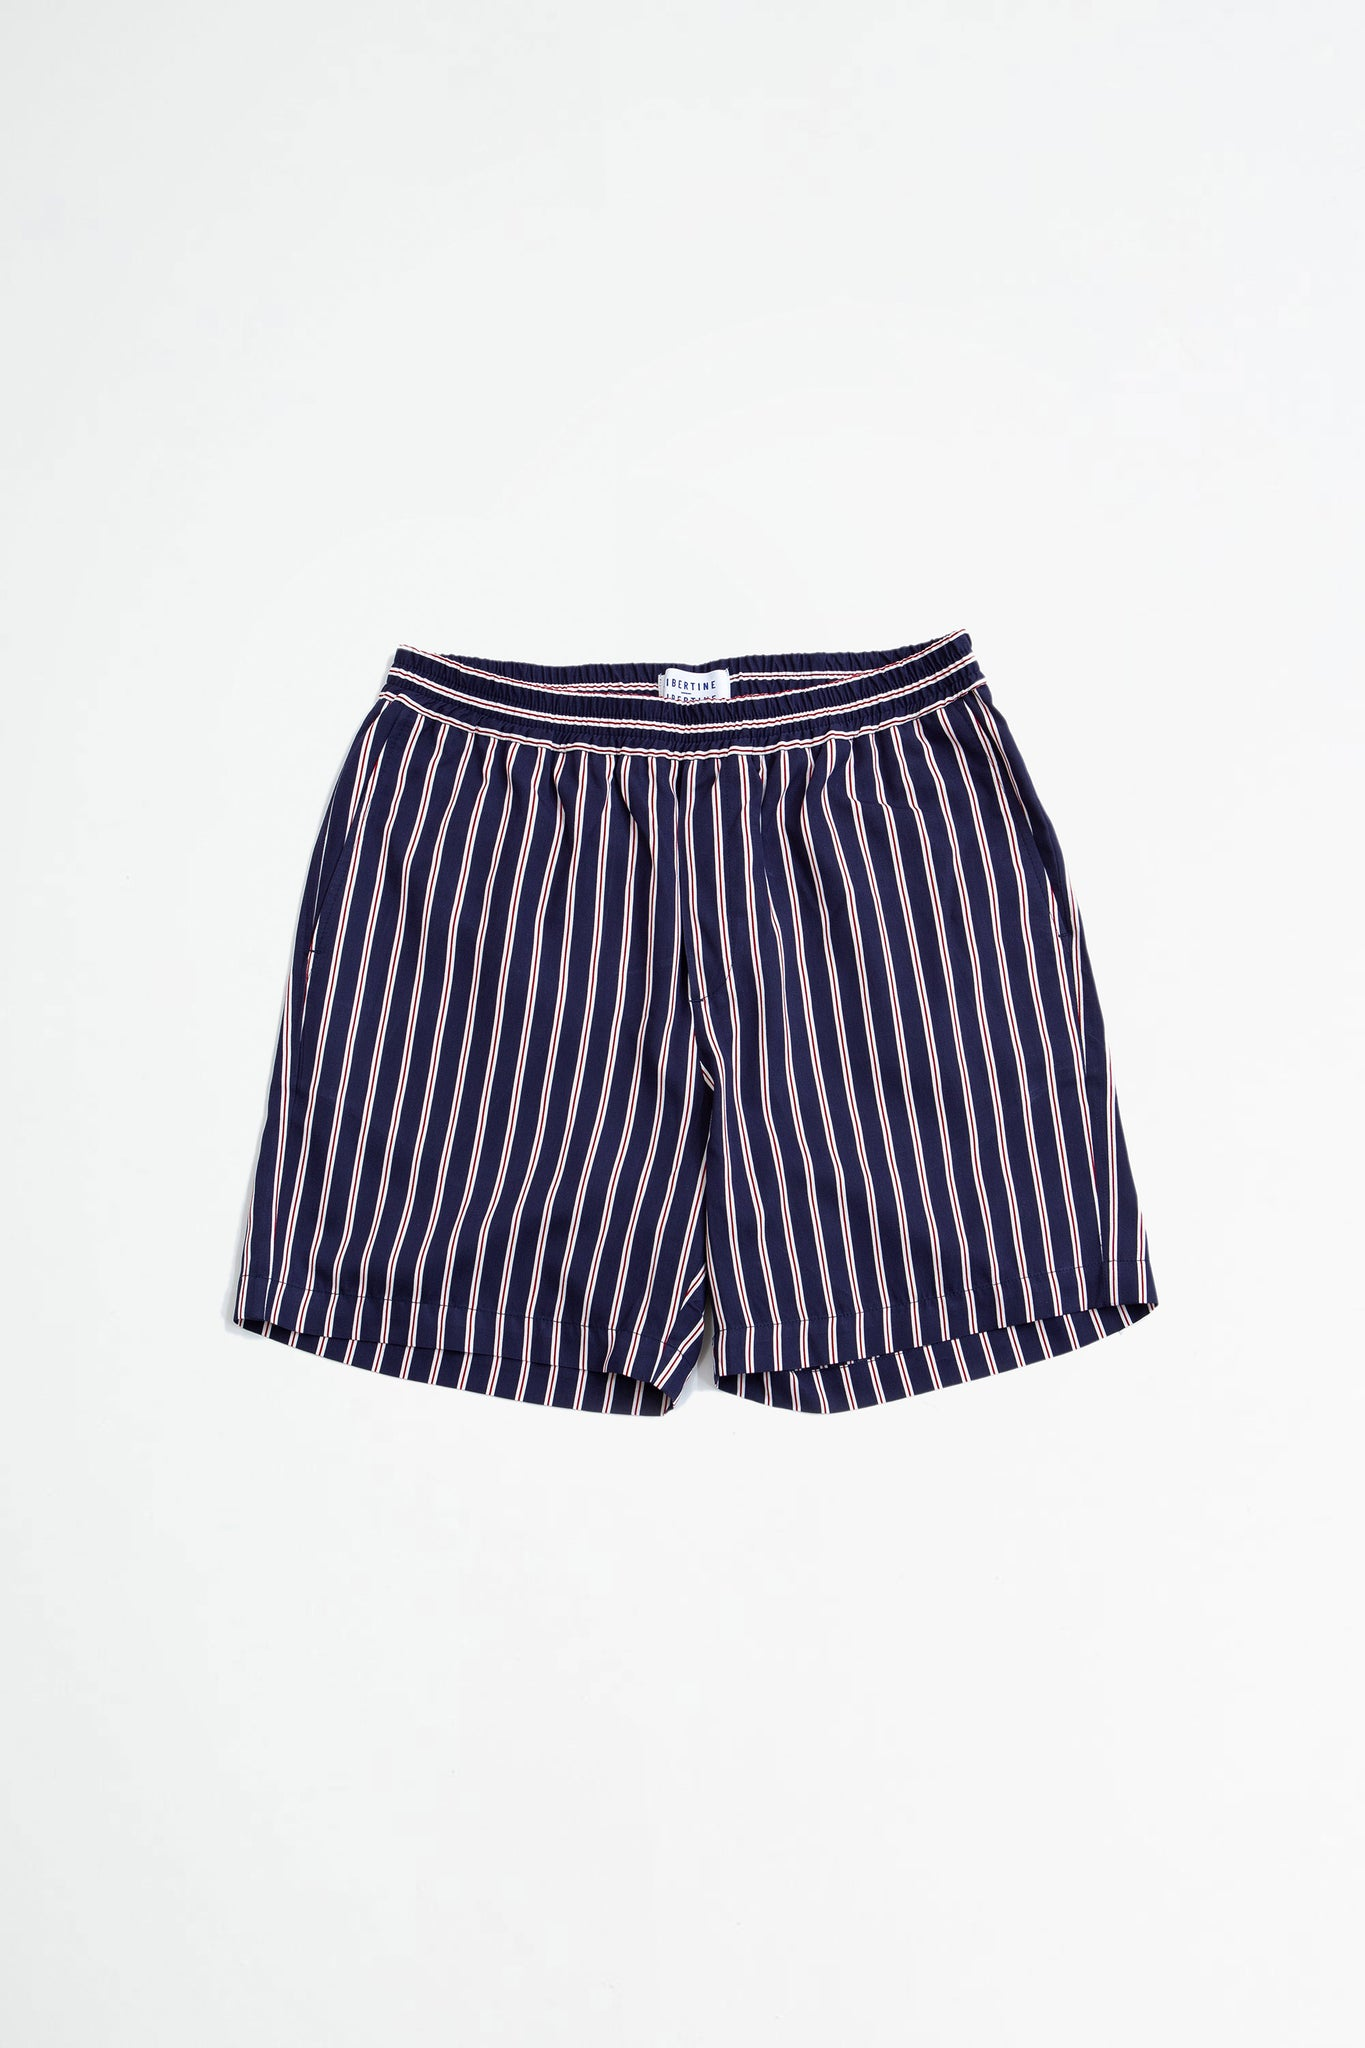 Front shorts navy red